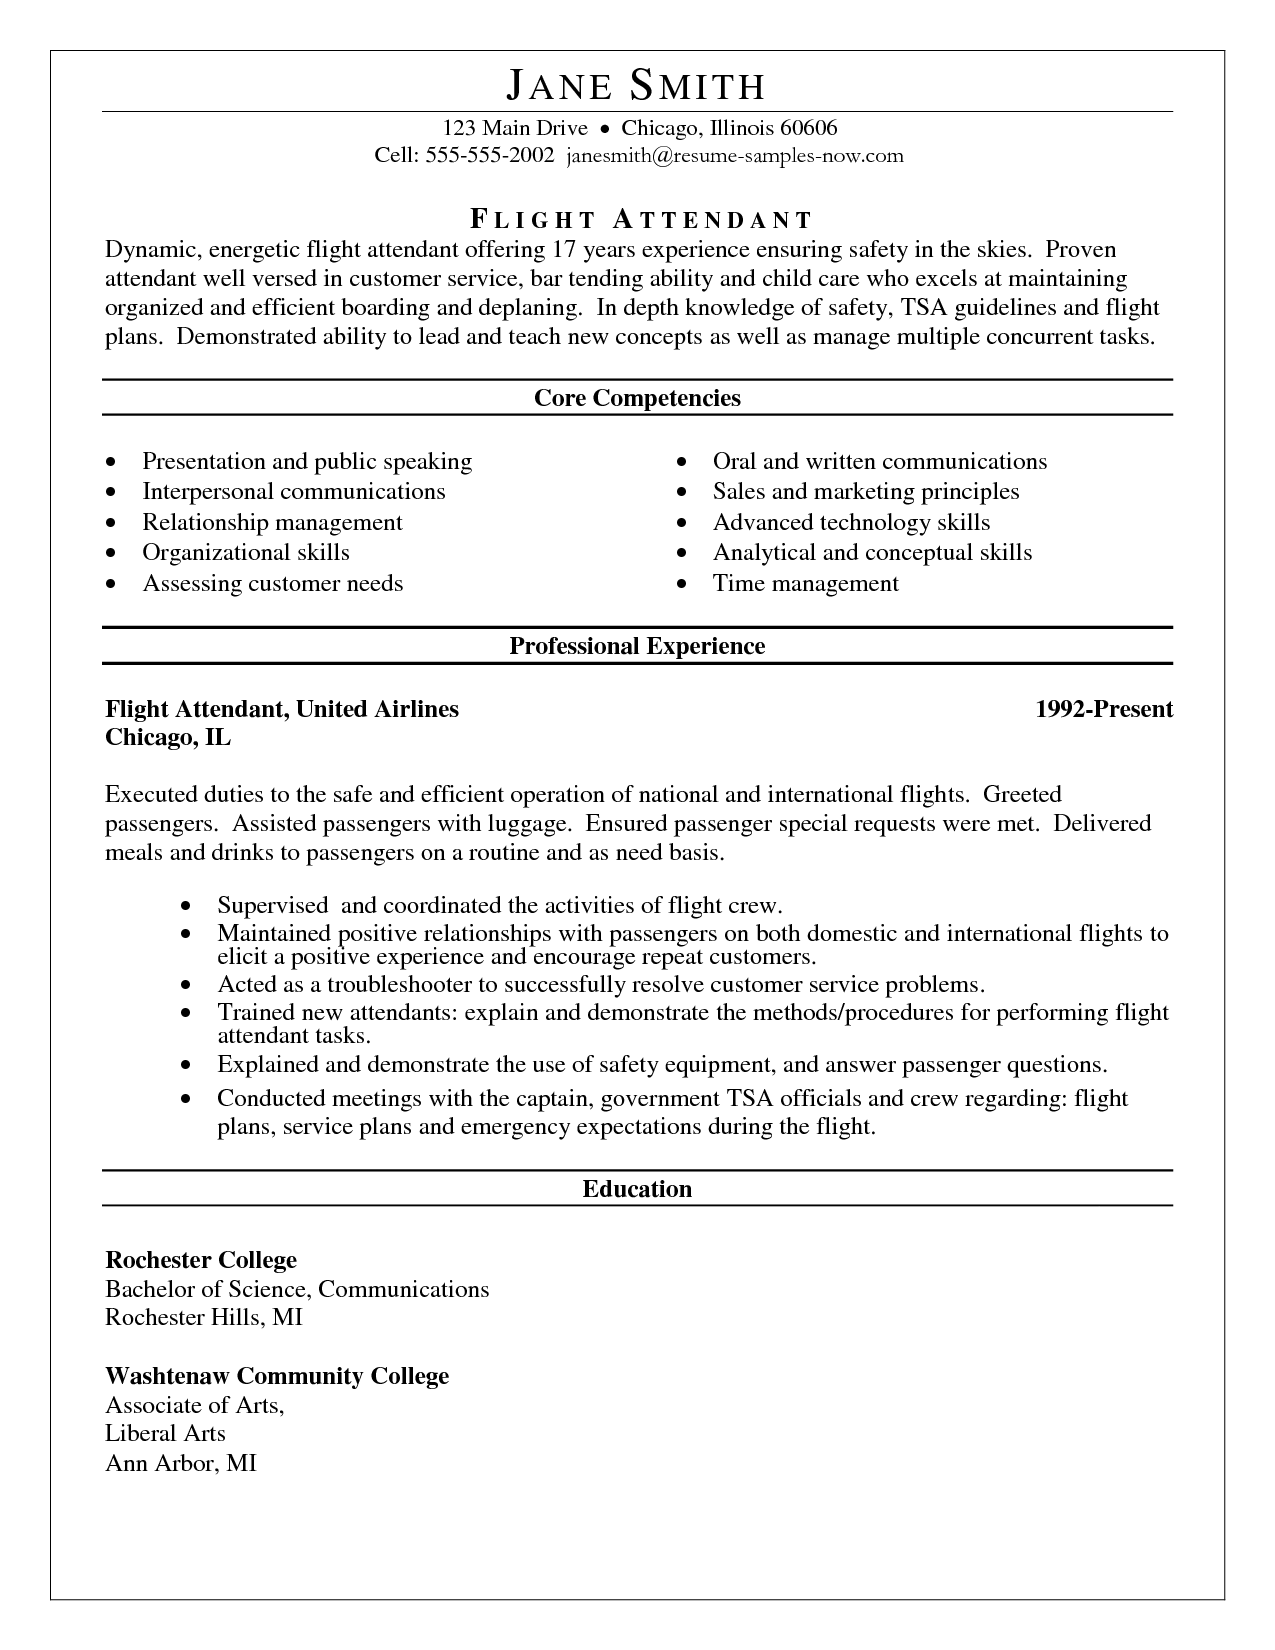 cv skills and competencies examples